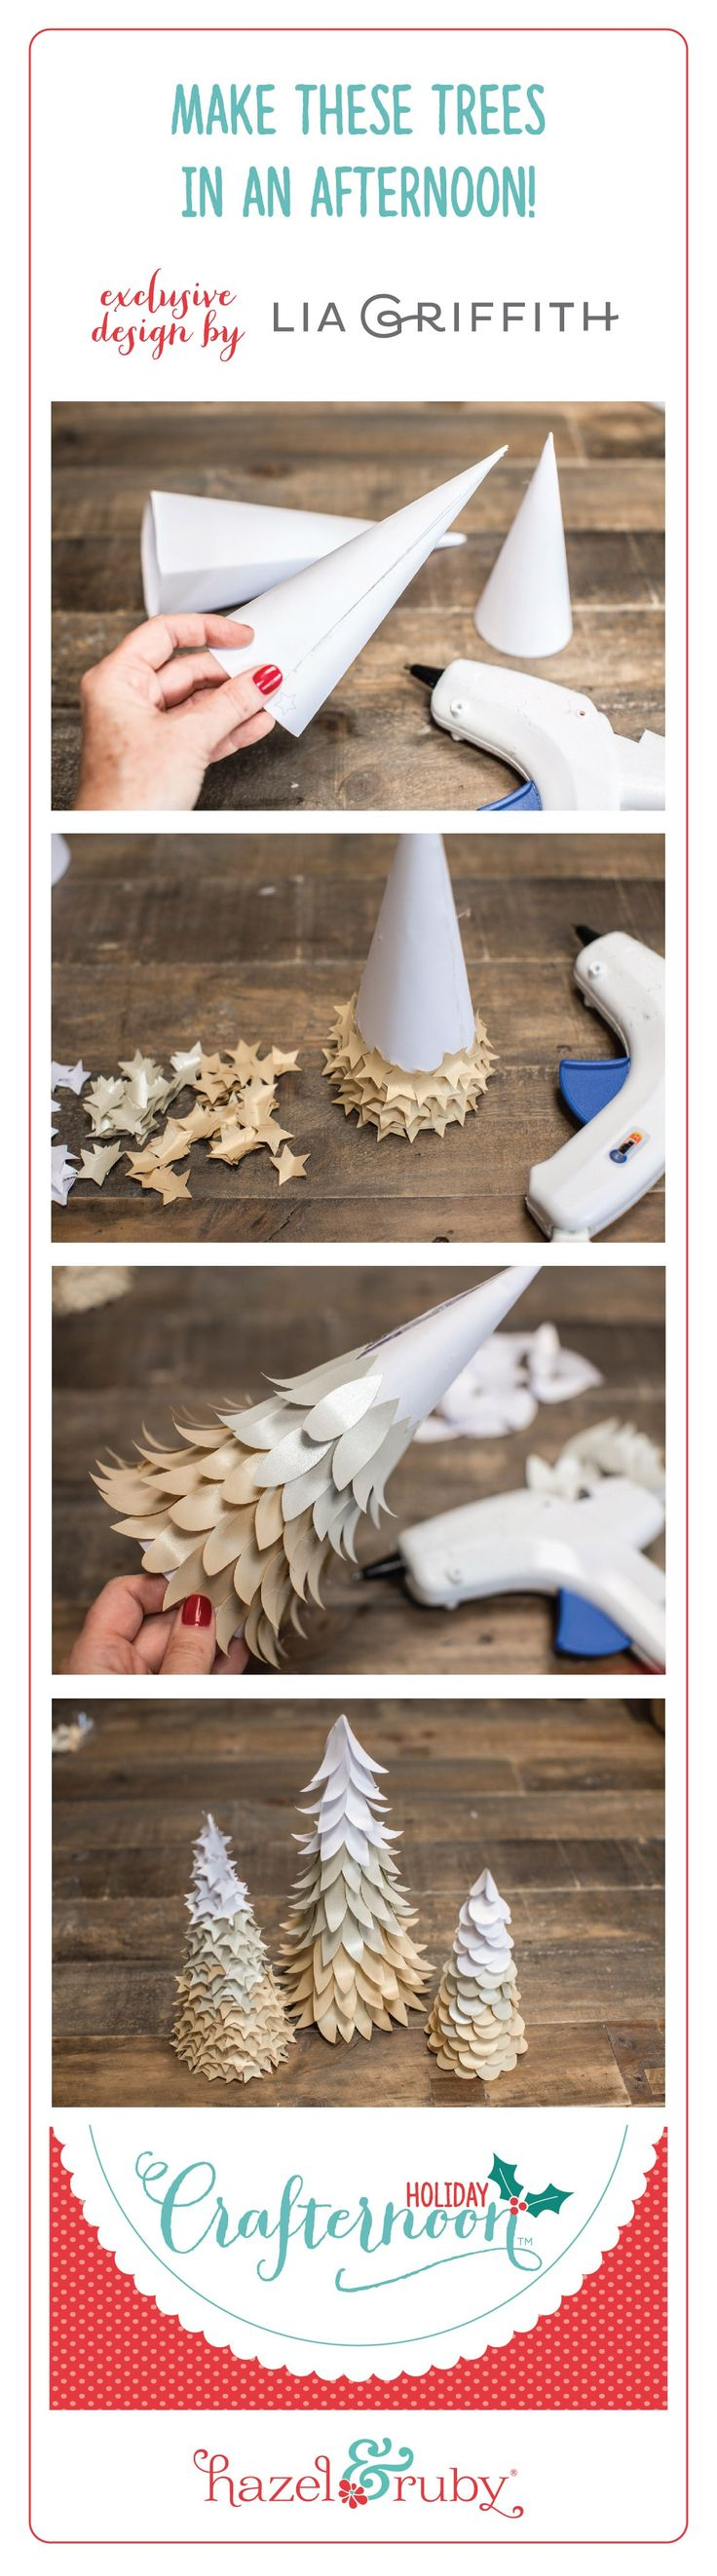 Make home decor in an afternoon with the Holiday Crafternoon kits! Shimmer Paper Trees are a great afternoon DIY the whole family and can help with! | Project by Lia Griffith